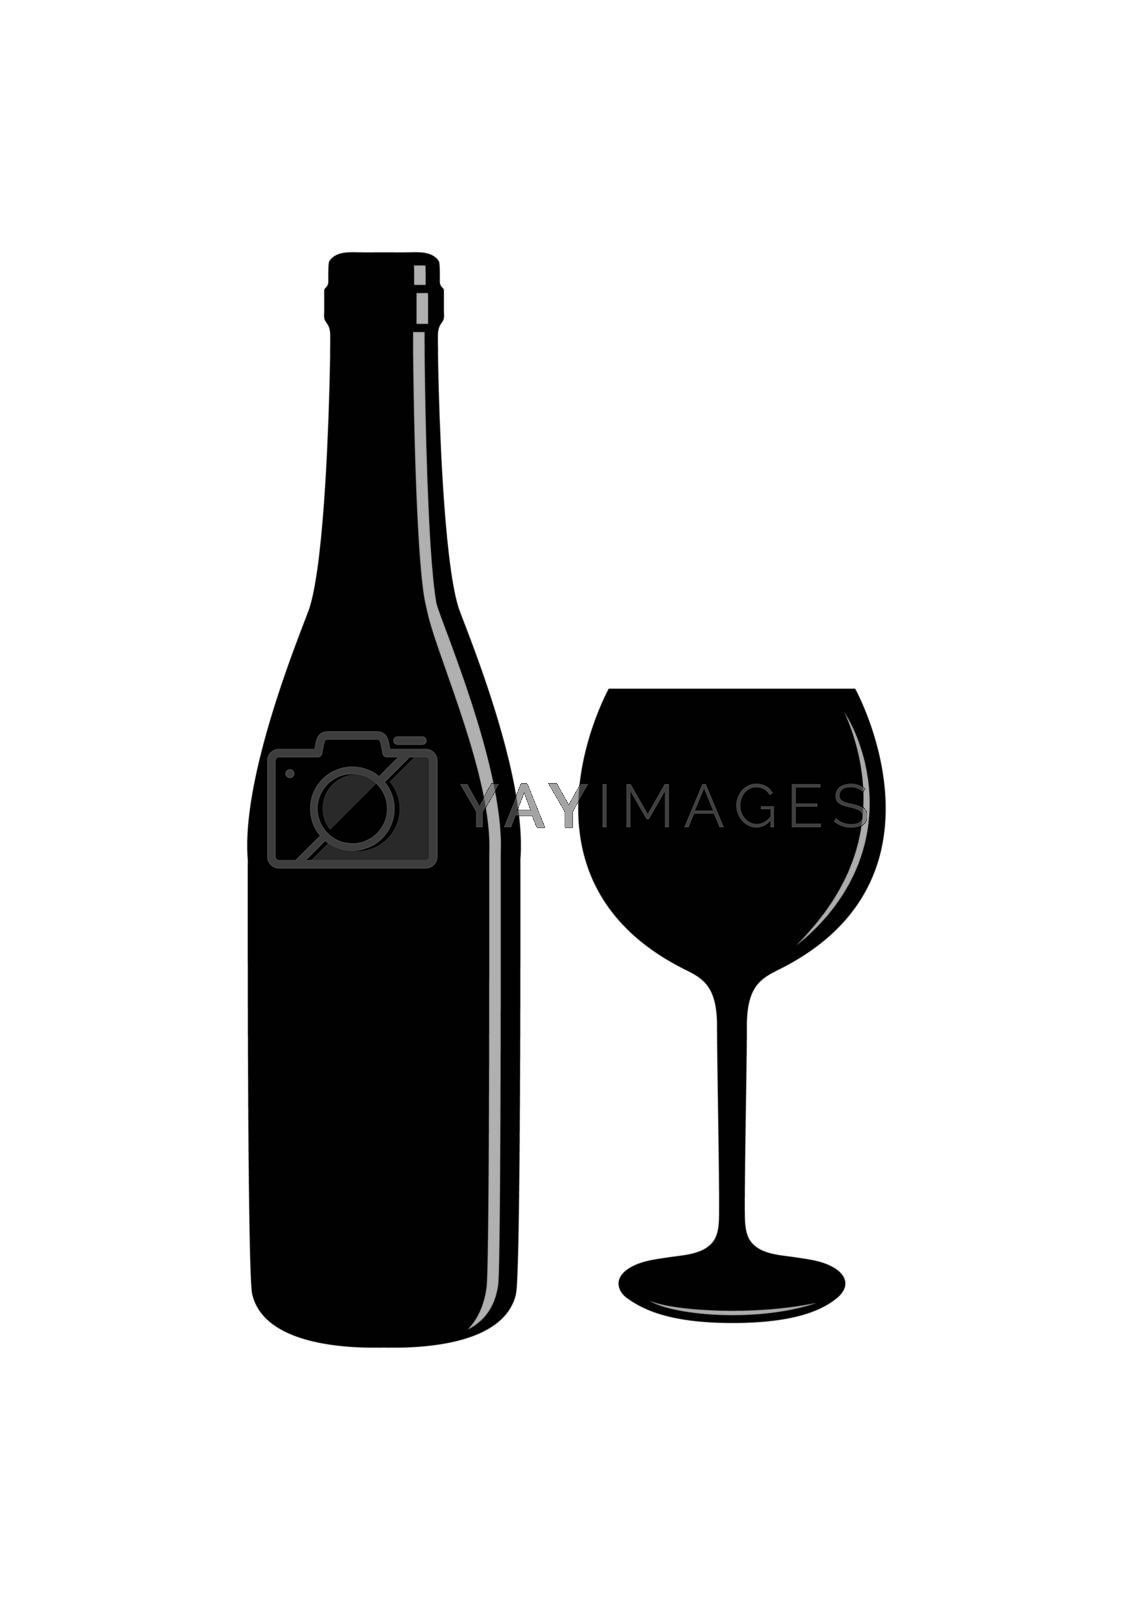 bottle of wine and a glass with a drink. Simple drawing.